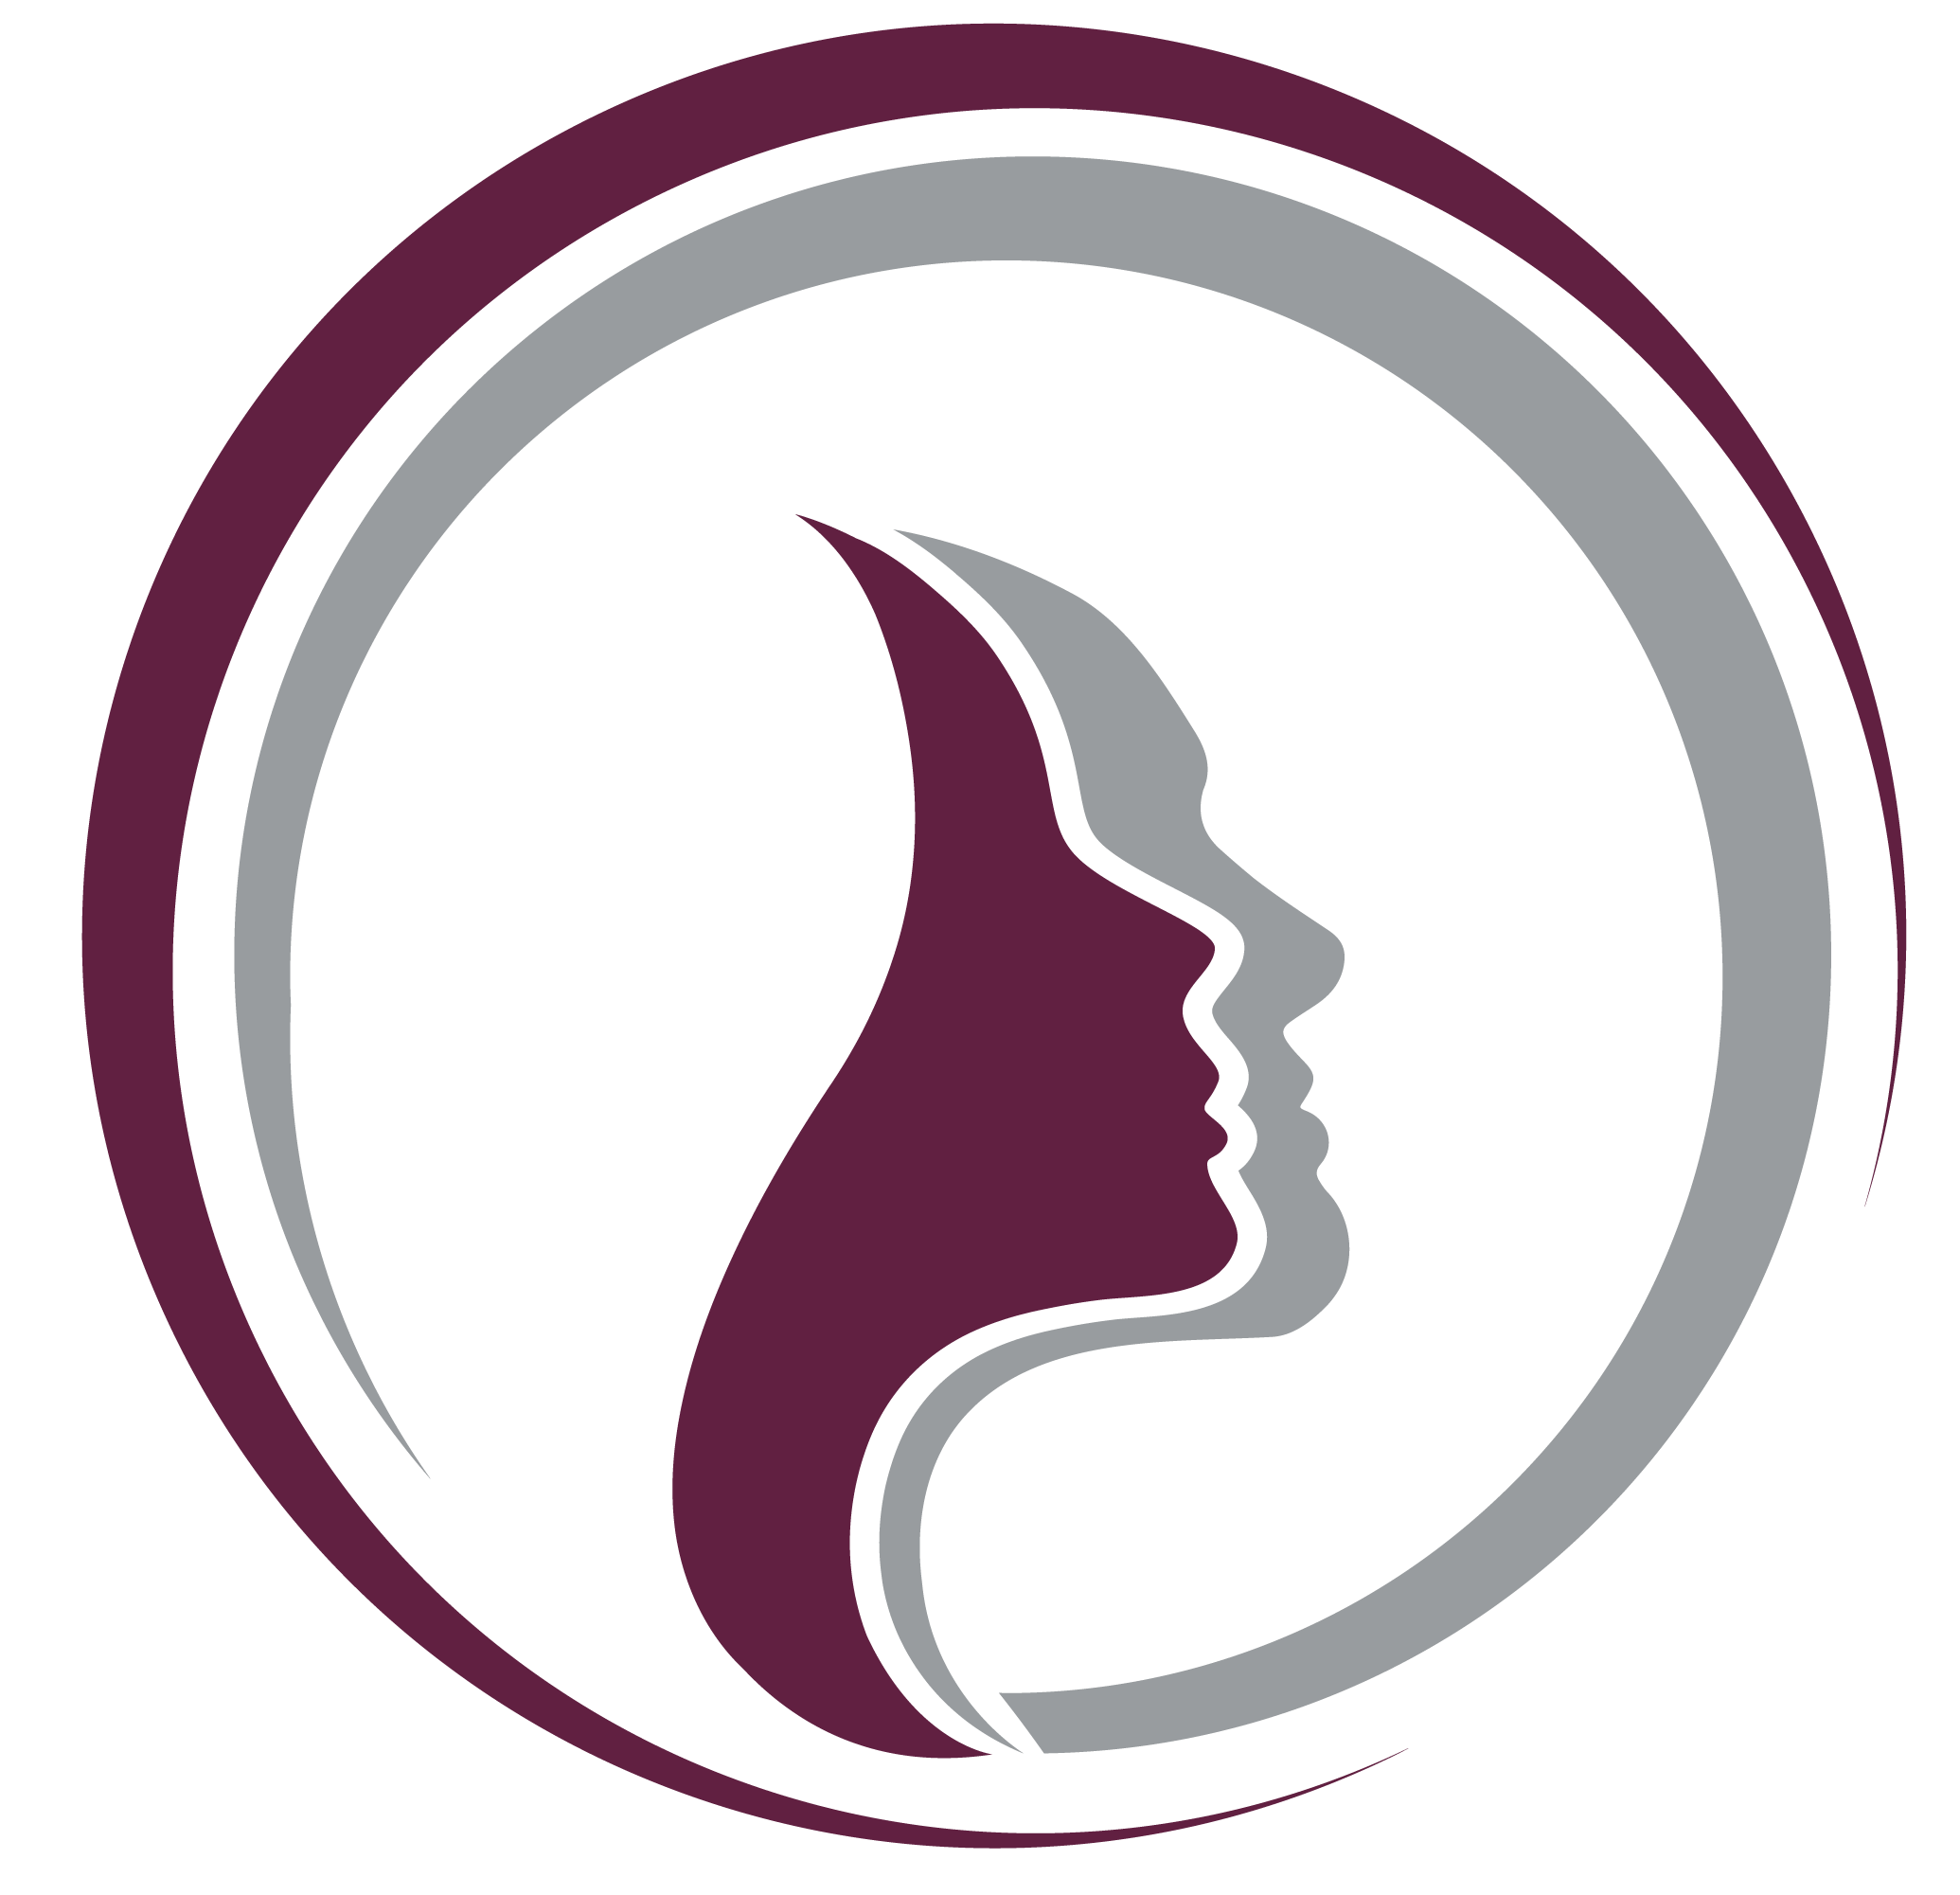 DEXTER ORAL SURGERY LOGO